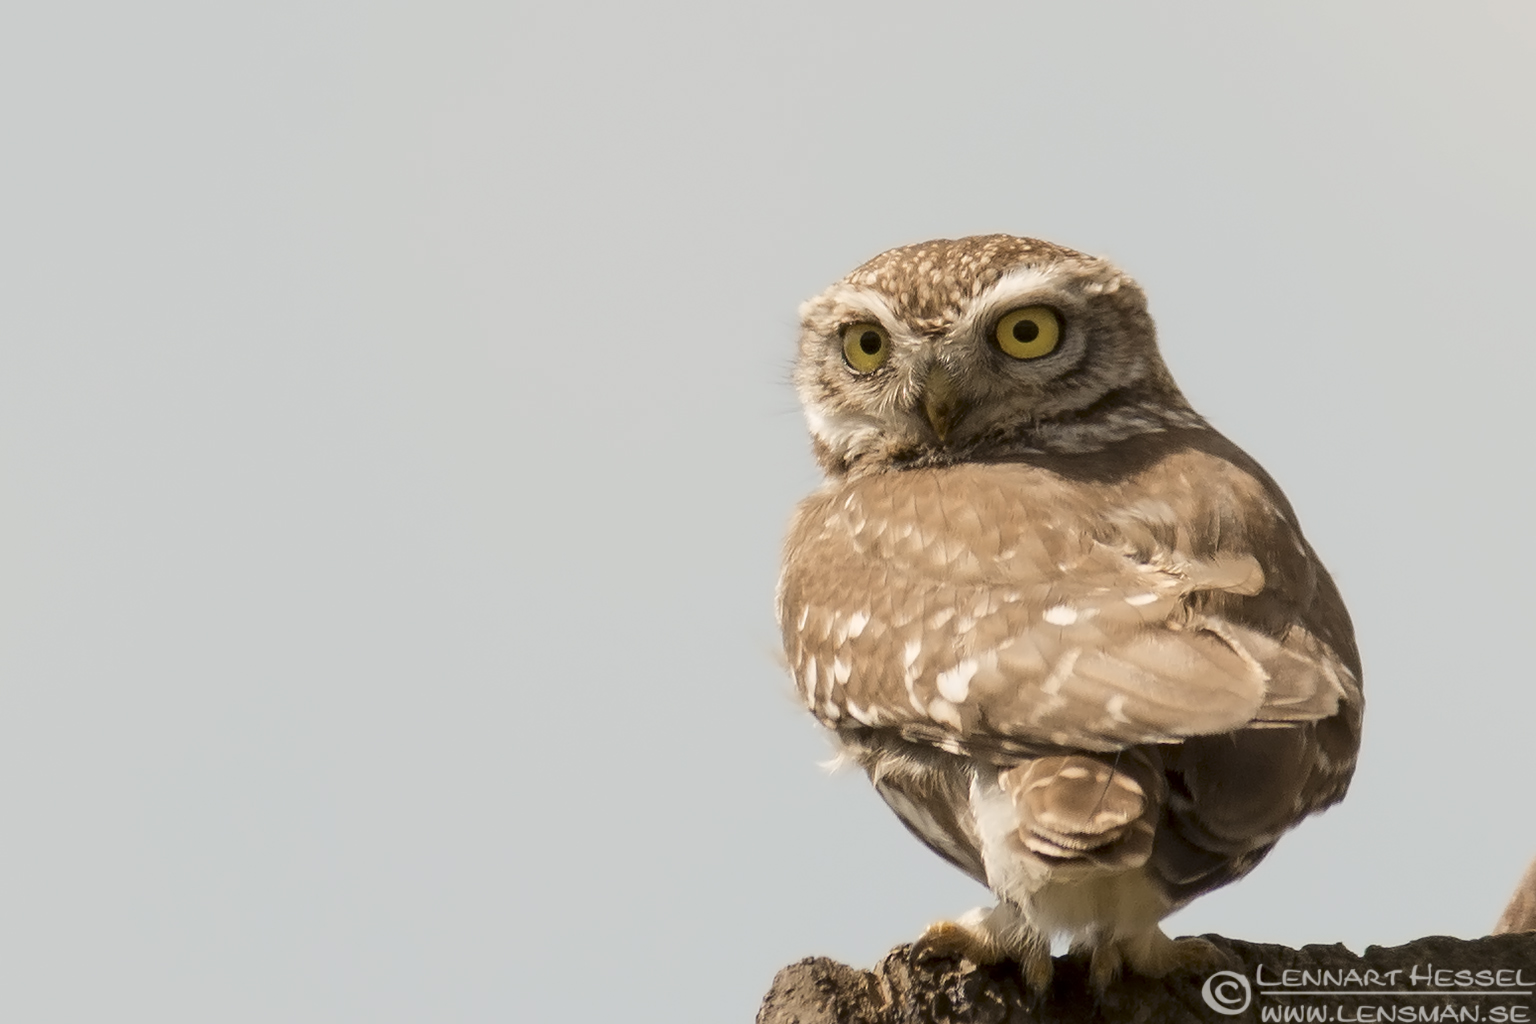 Little Owl in Romania